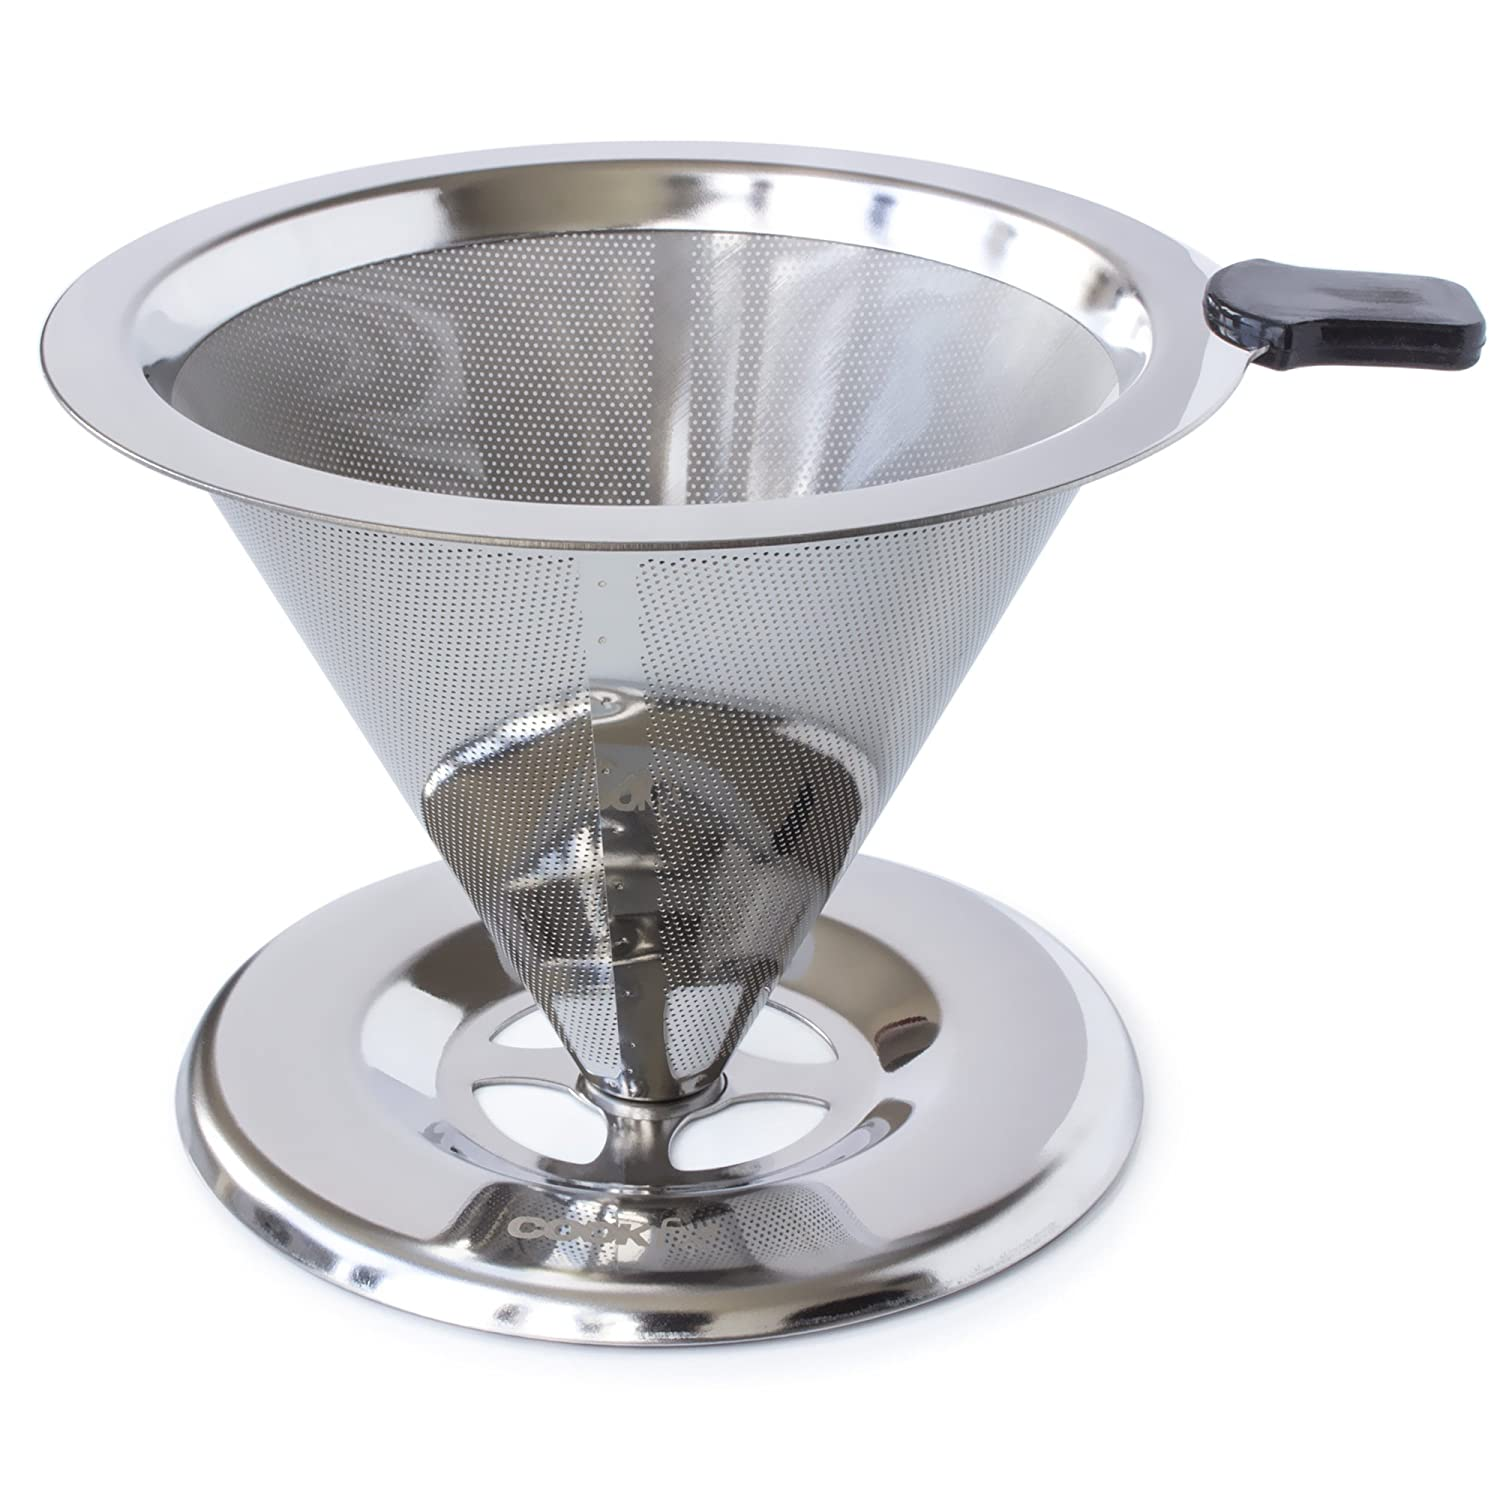 *NEW* PREMIUM Stainless Steel Coffee Dripper Cone - Pour Over Maker - Single Cup